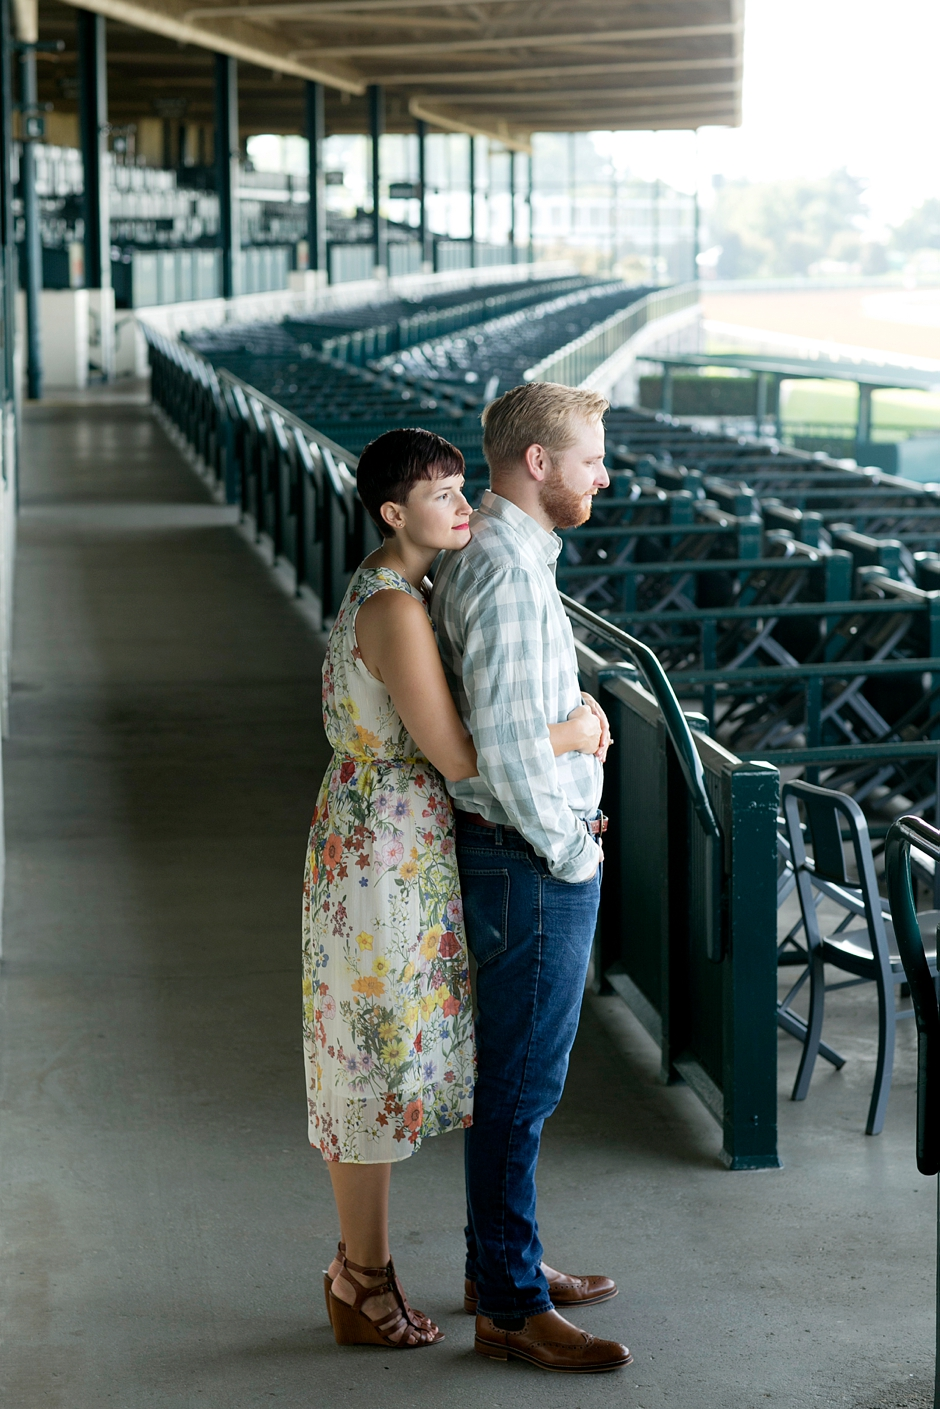 keeneland-engagement-photos-corgi-bluegrass-ky-equestrian-038